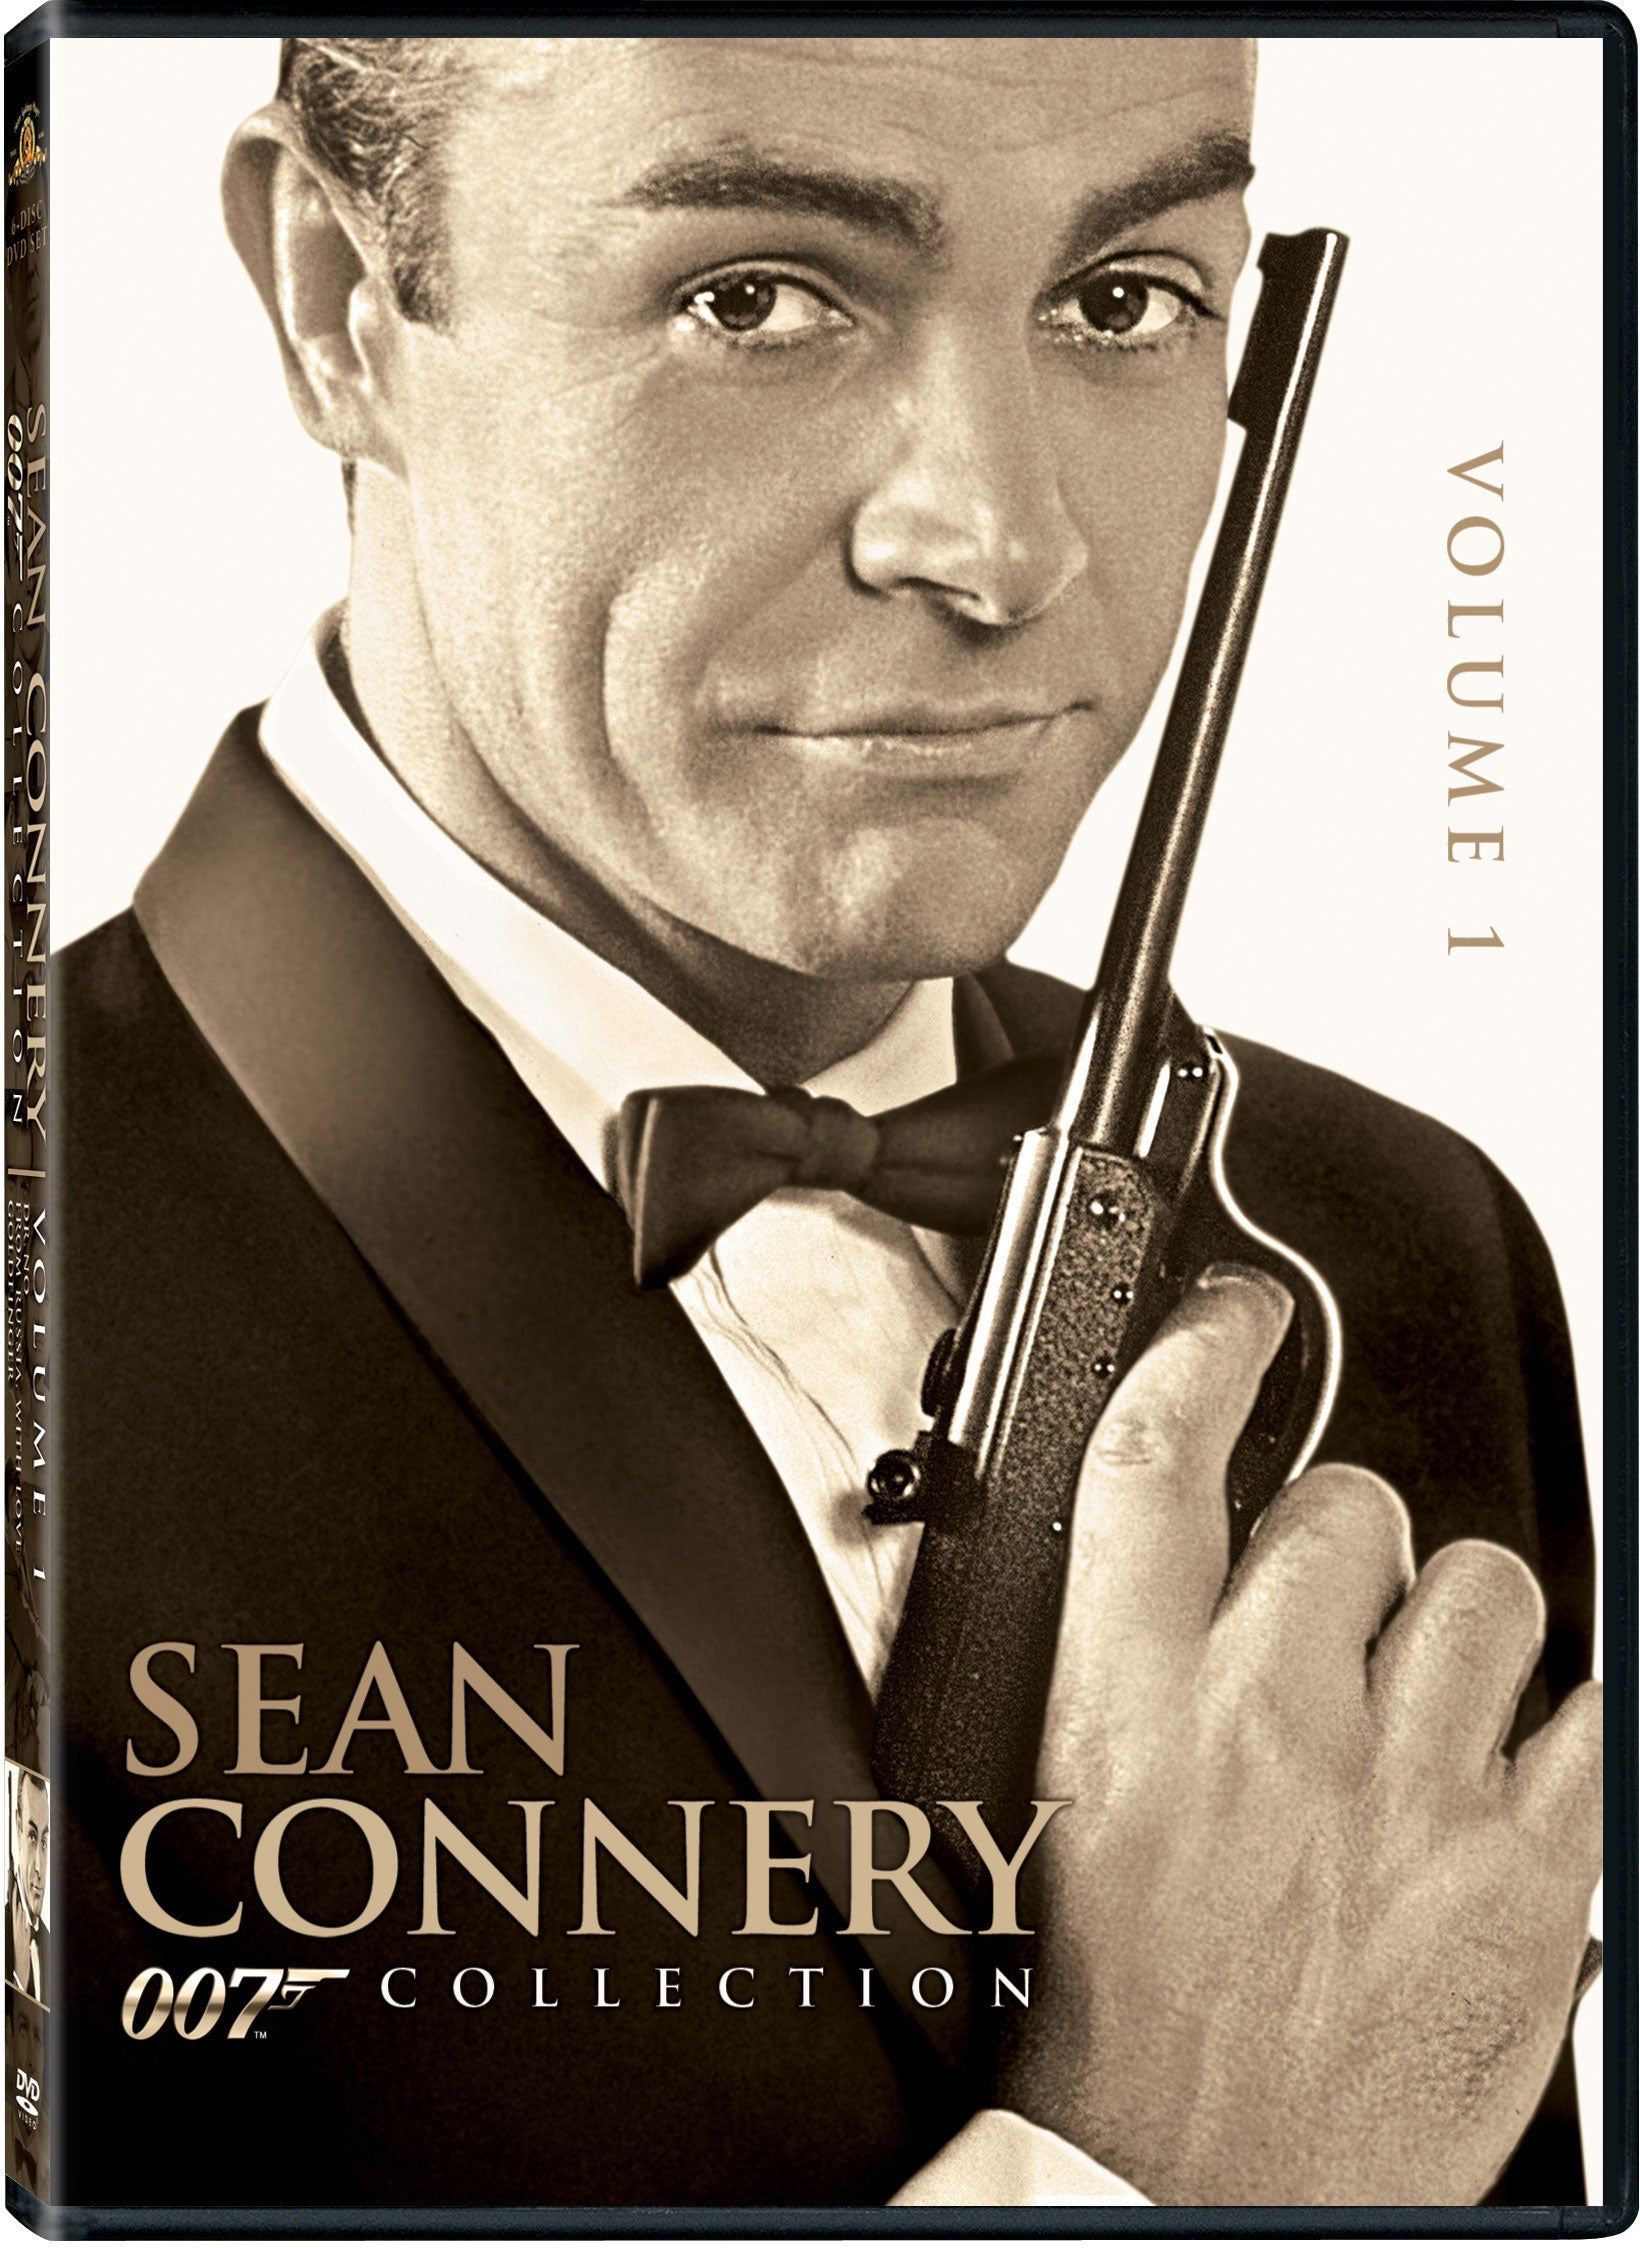 Sean Connery James Bond 007 Ultimate Collection: Vol. 1 (DVD)